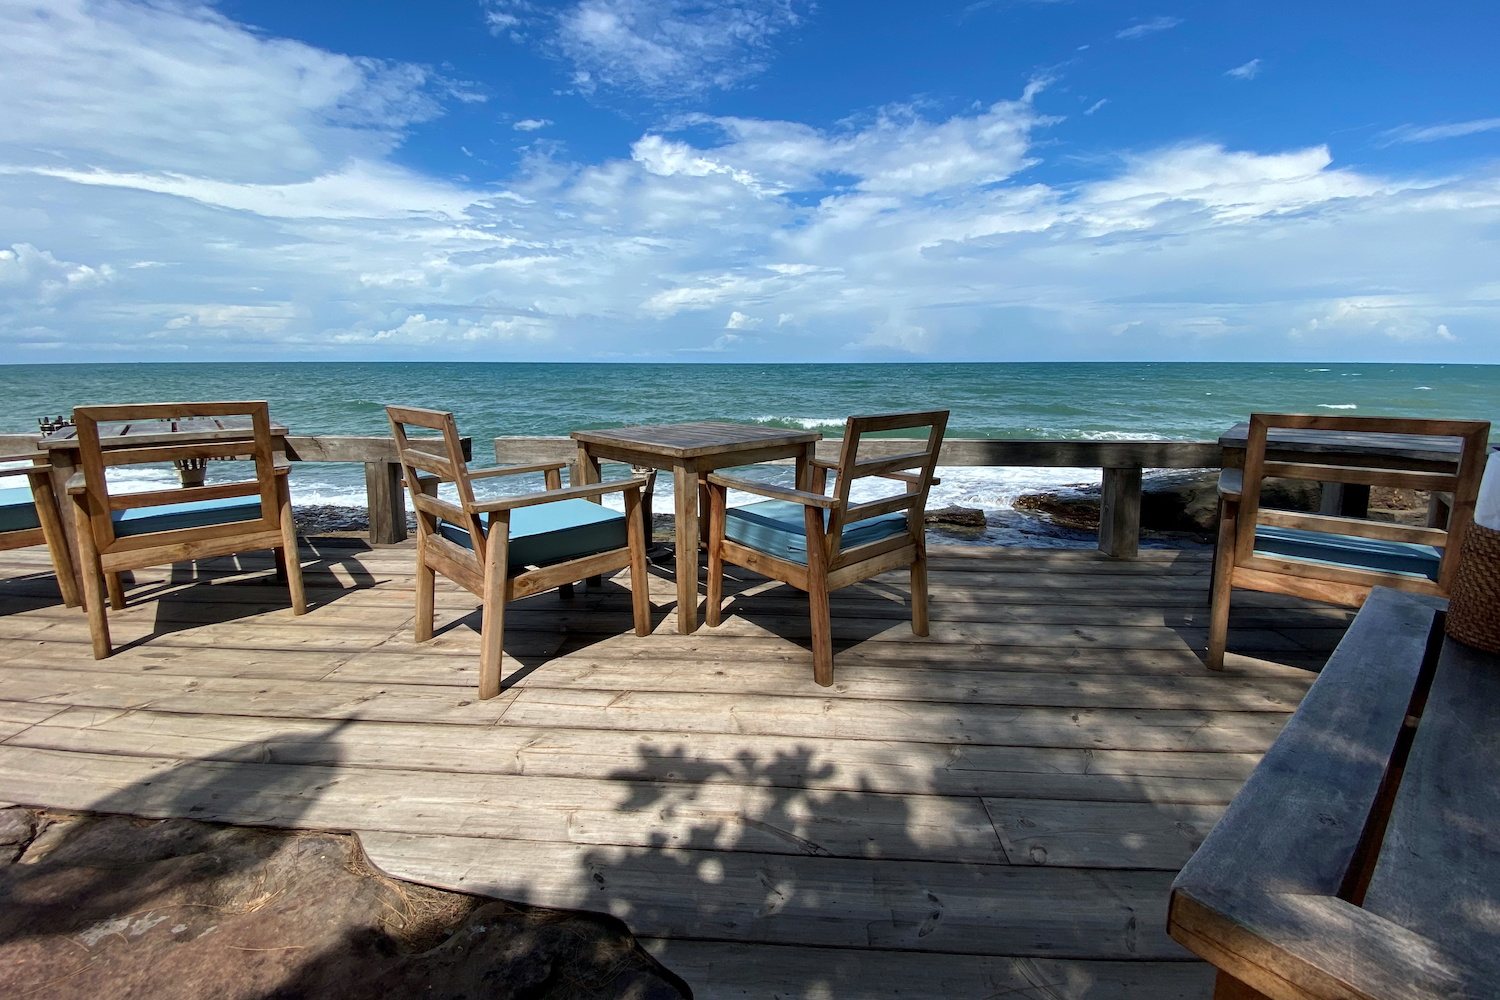 Vietnam to reopen Phu Quoc next month